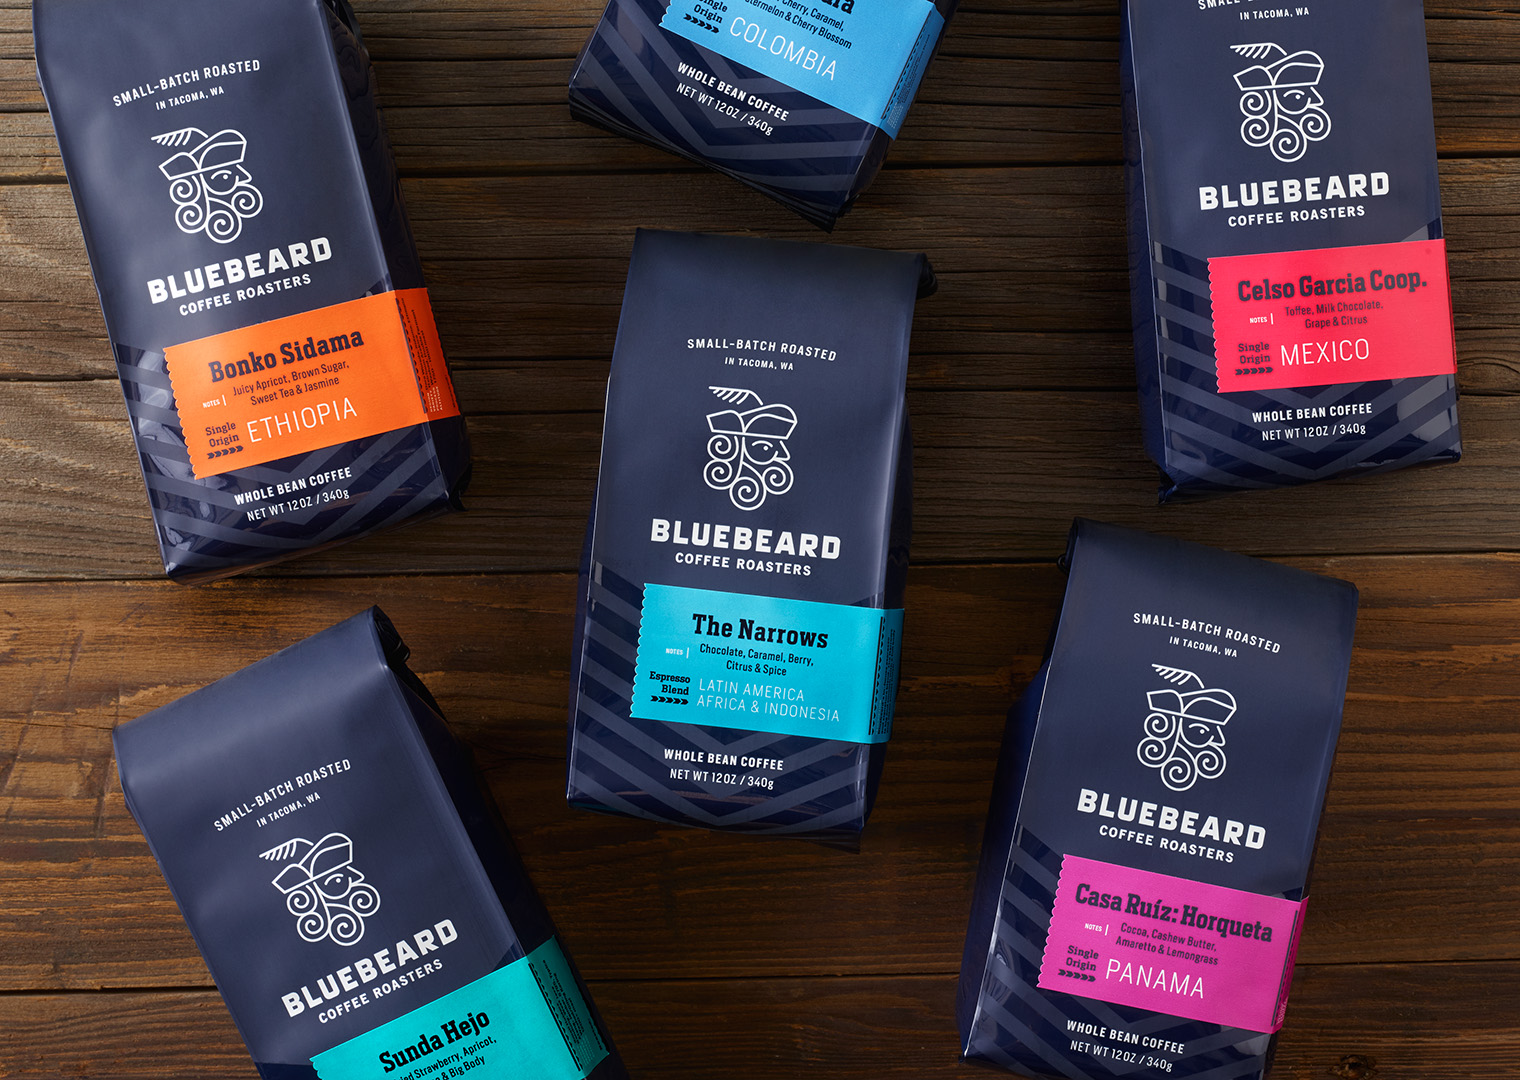 Bluebeard Coffee Roasters retail bags